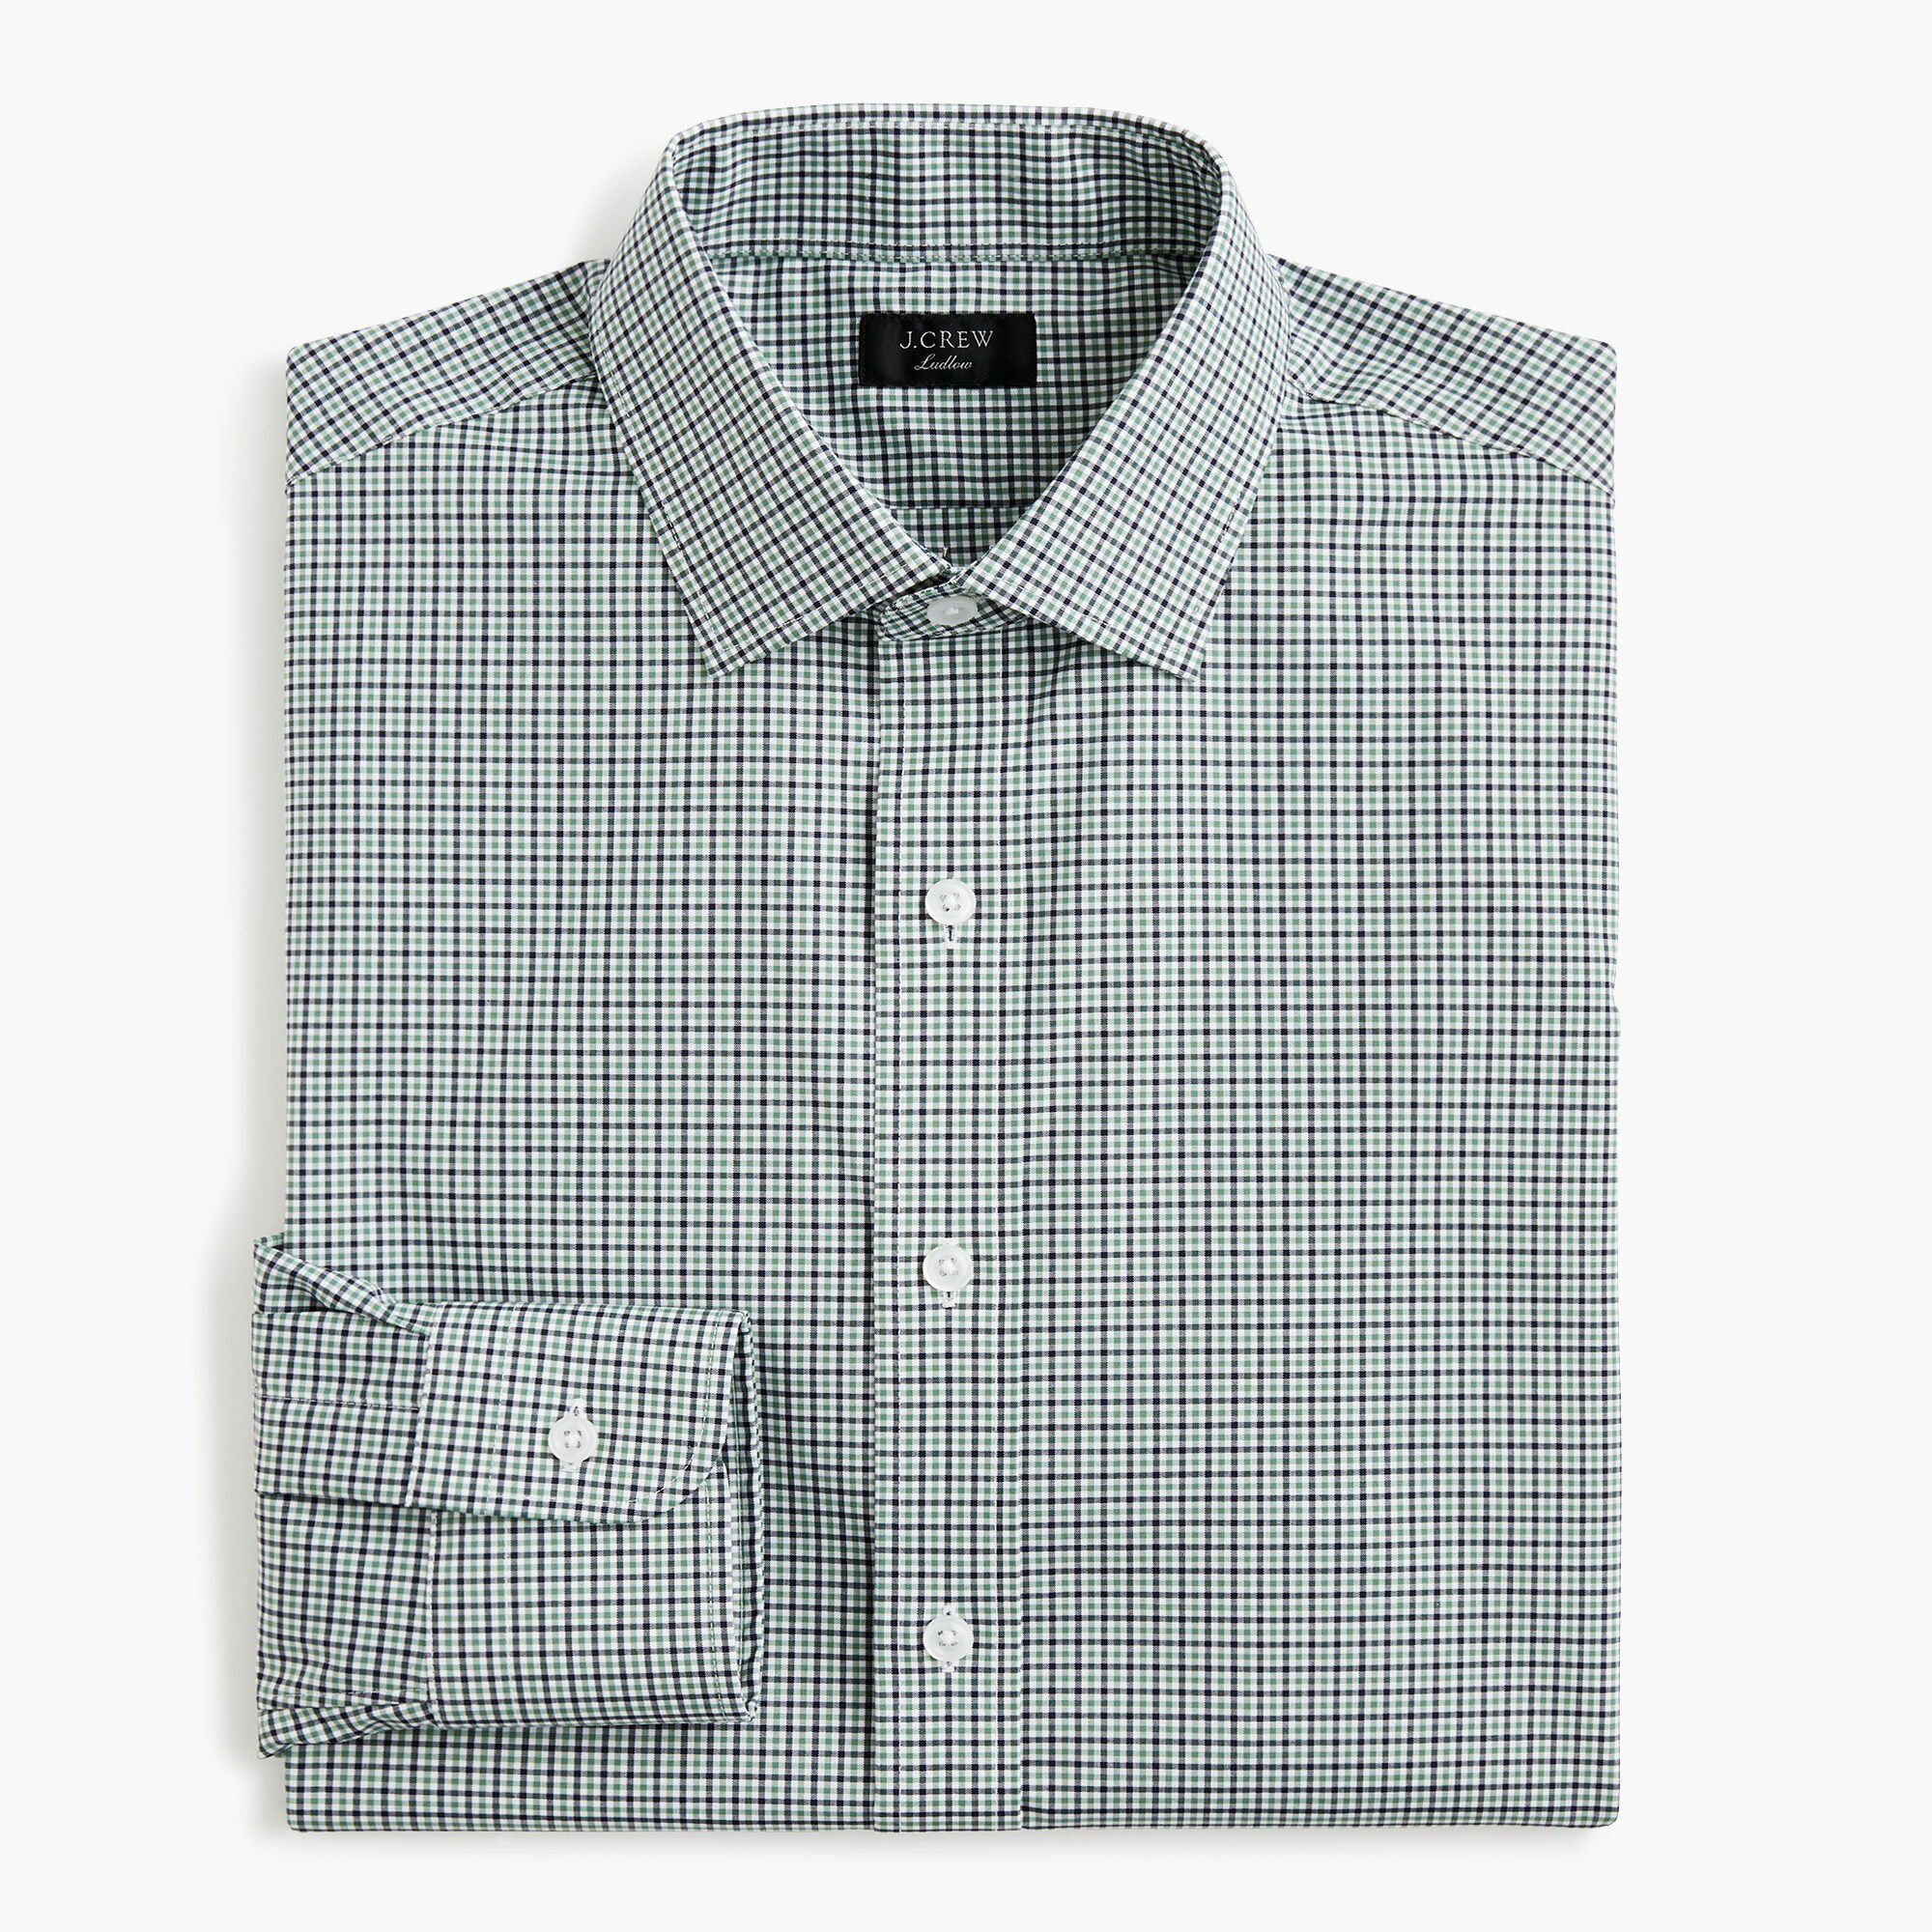 Ludlow Slim-fit stretch two-ply easy-care cotton dress shirt in blue tattersall